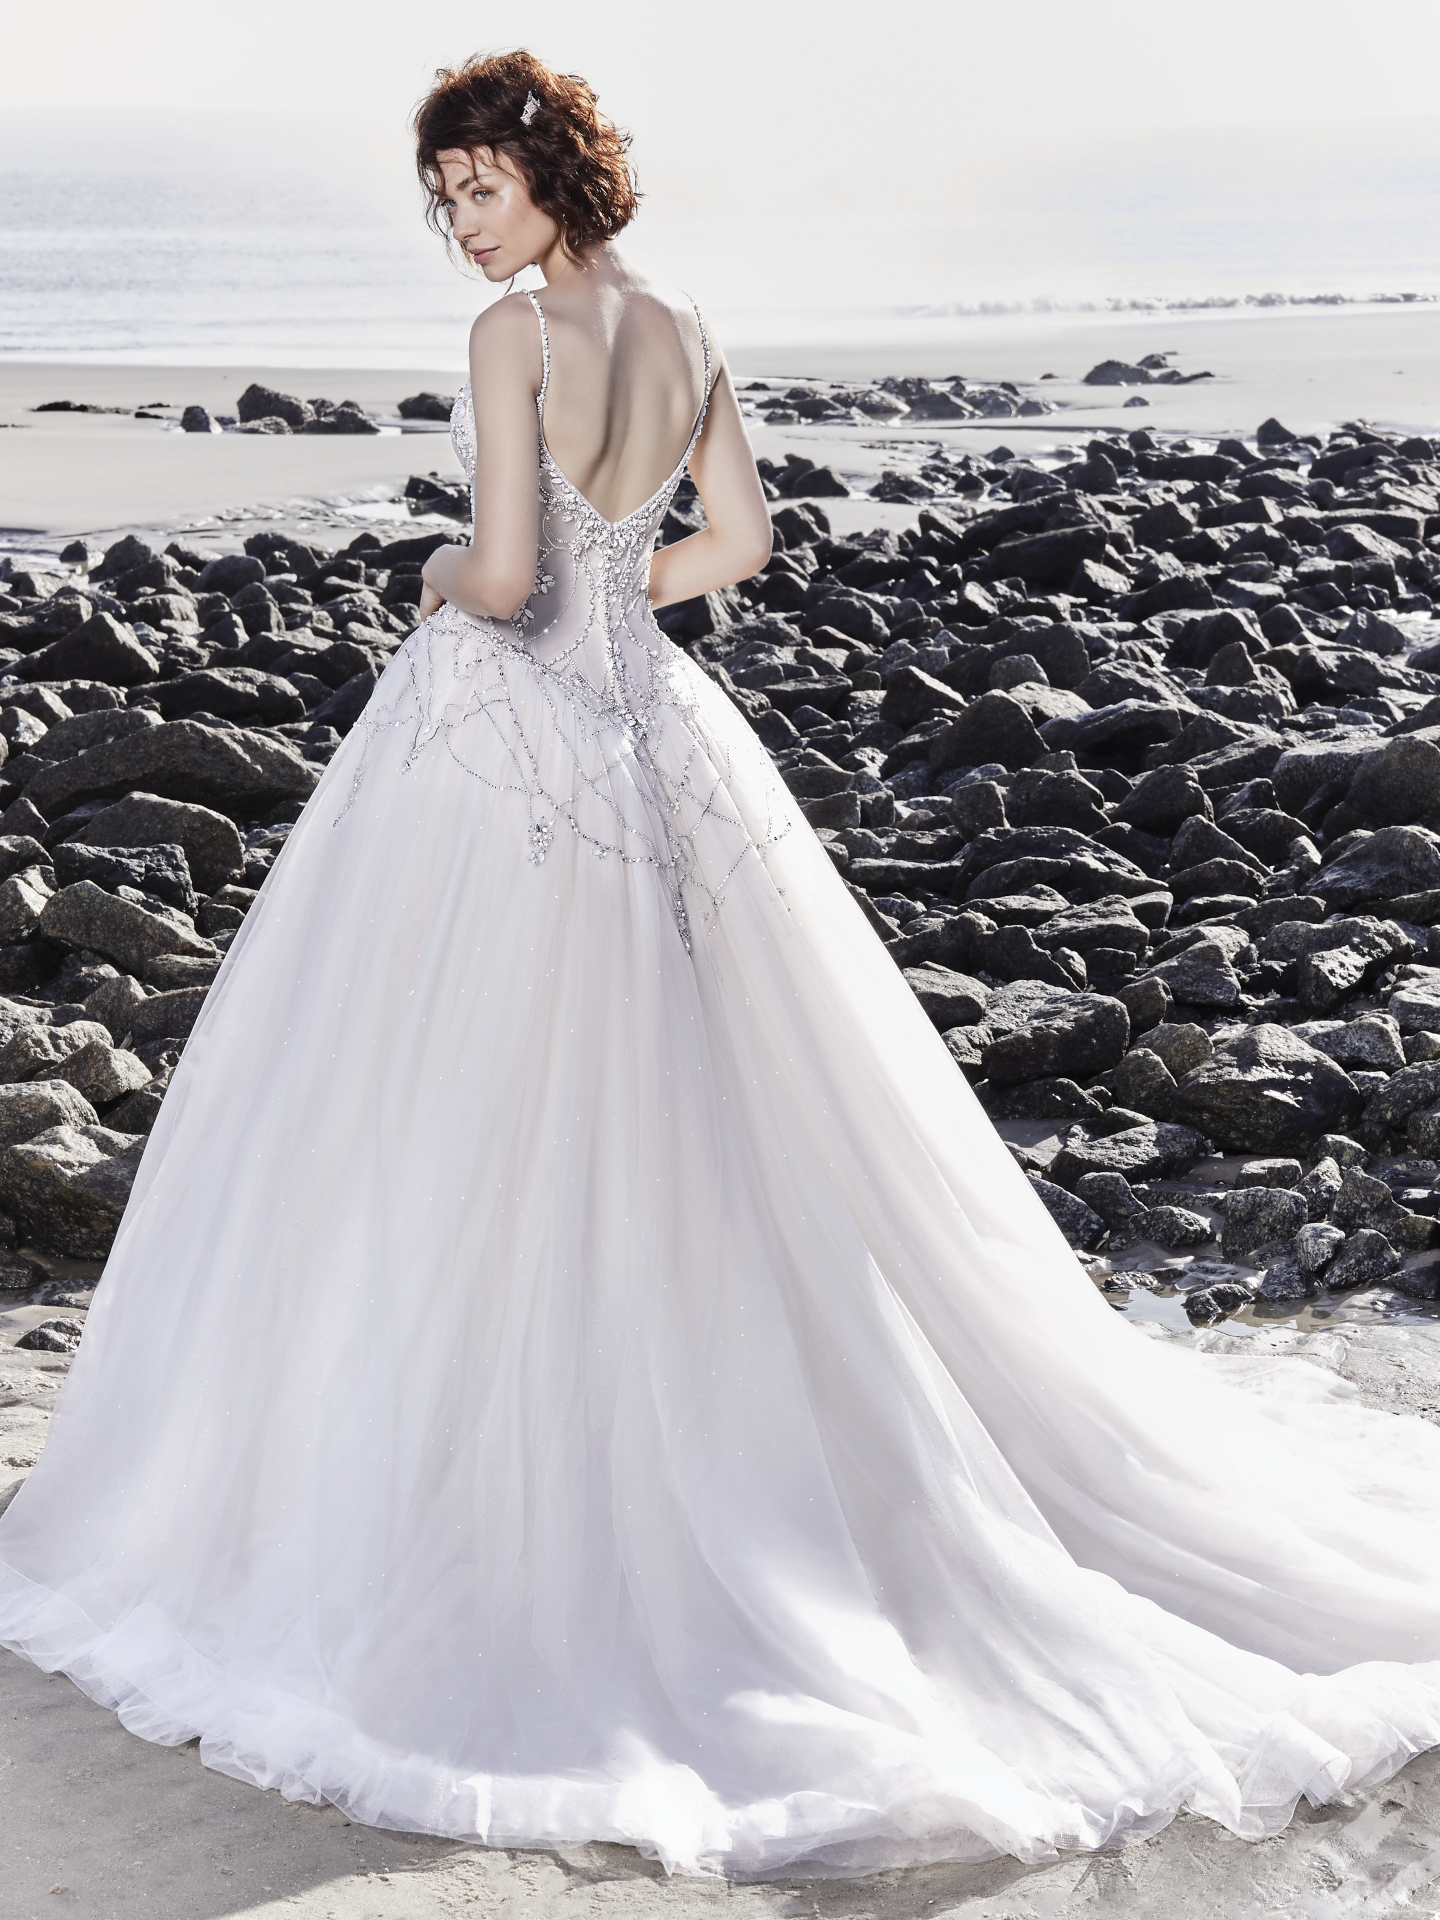 The Latest Glitzy, Red-Carpet-Ready Styles from Sottero and Midgley - Boston